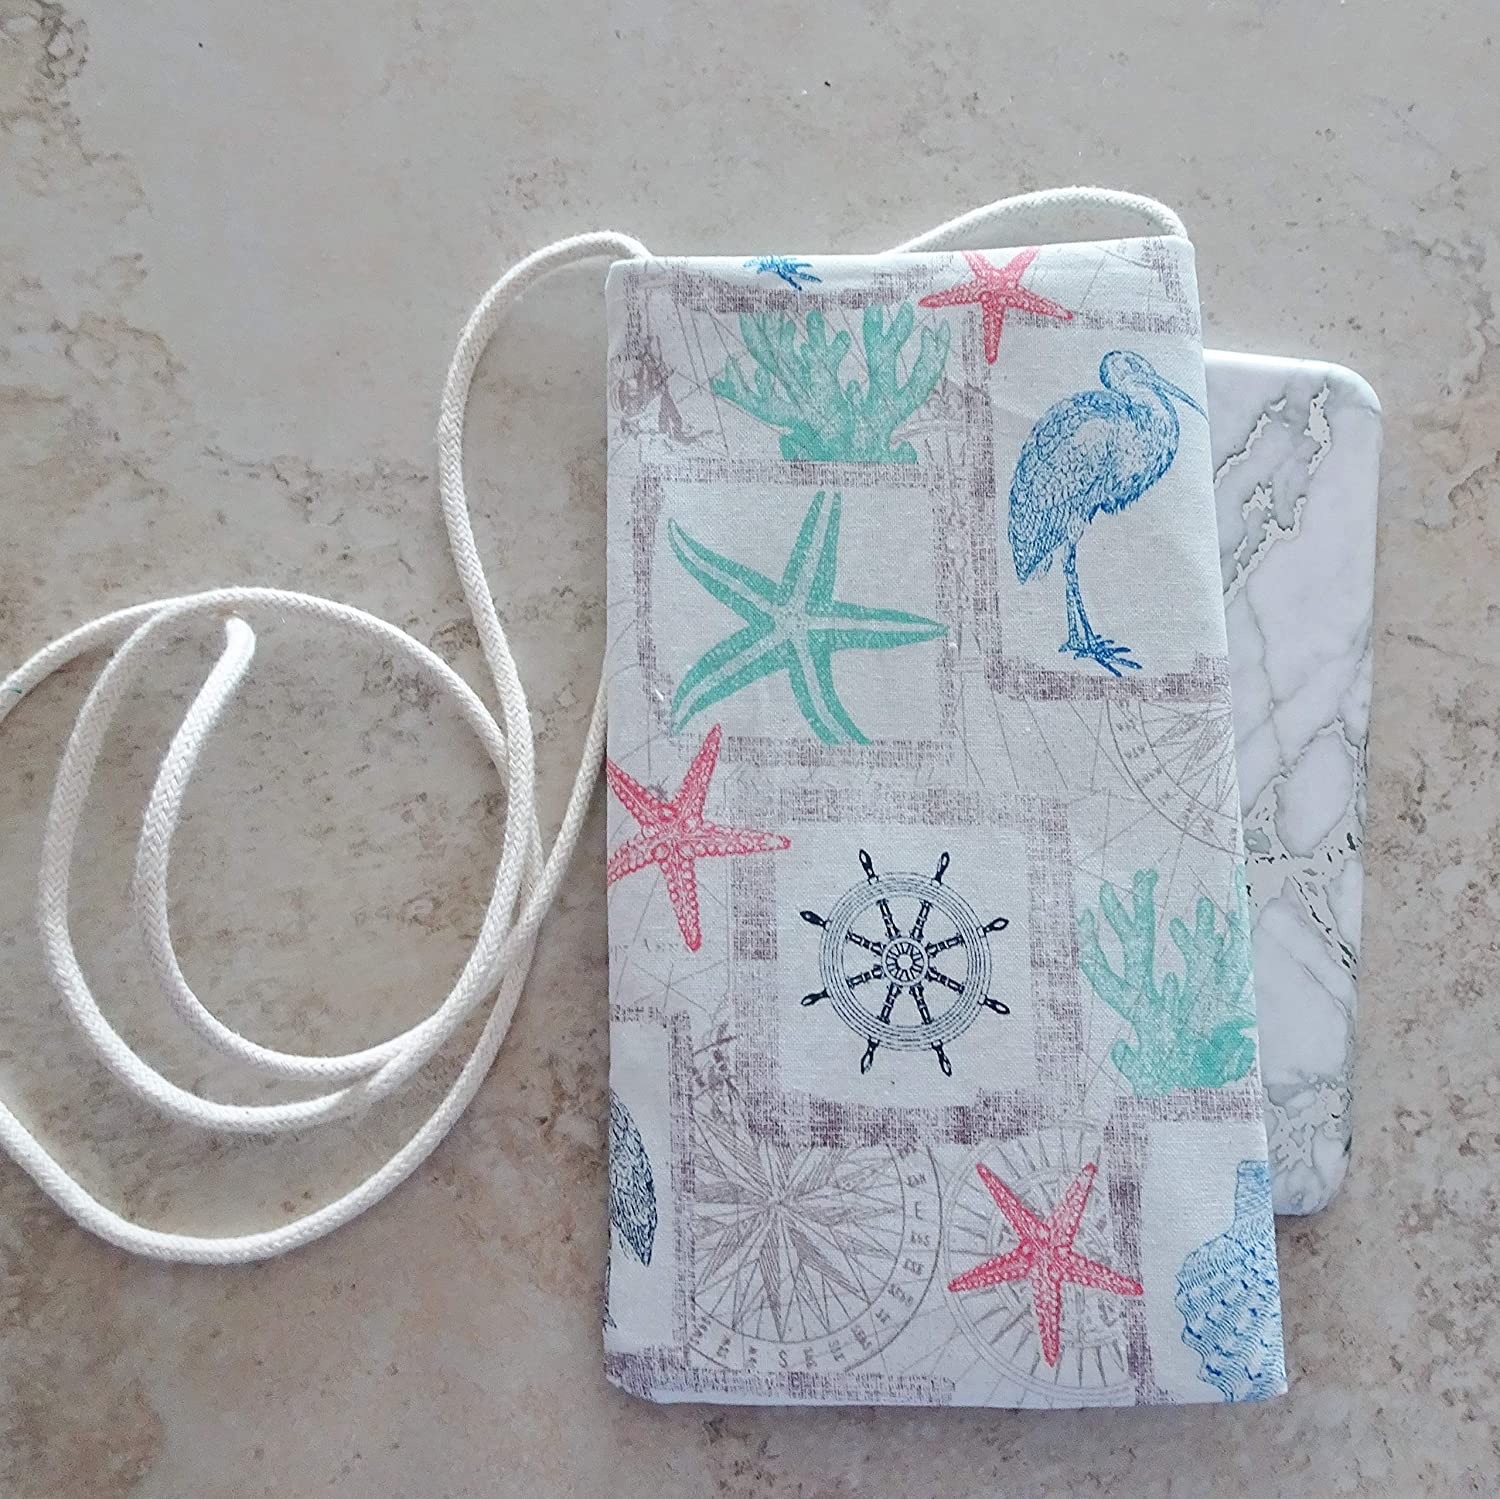 Strapped Pouch Summer Vacation Cell Pouch Coastal Beach Fabric Pouch Flip Flop Phone Purse Bag for Eyeglasses Small Purse Beach